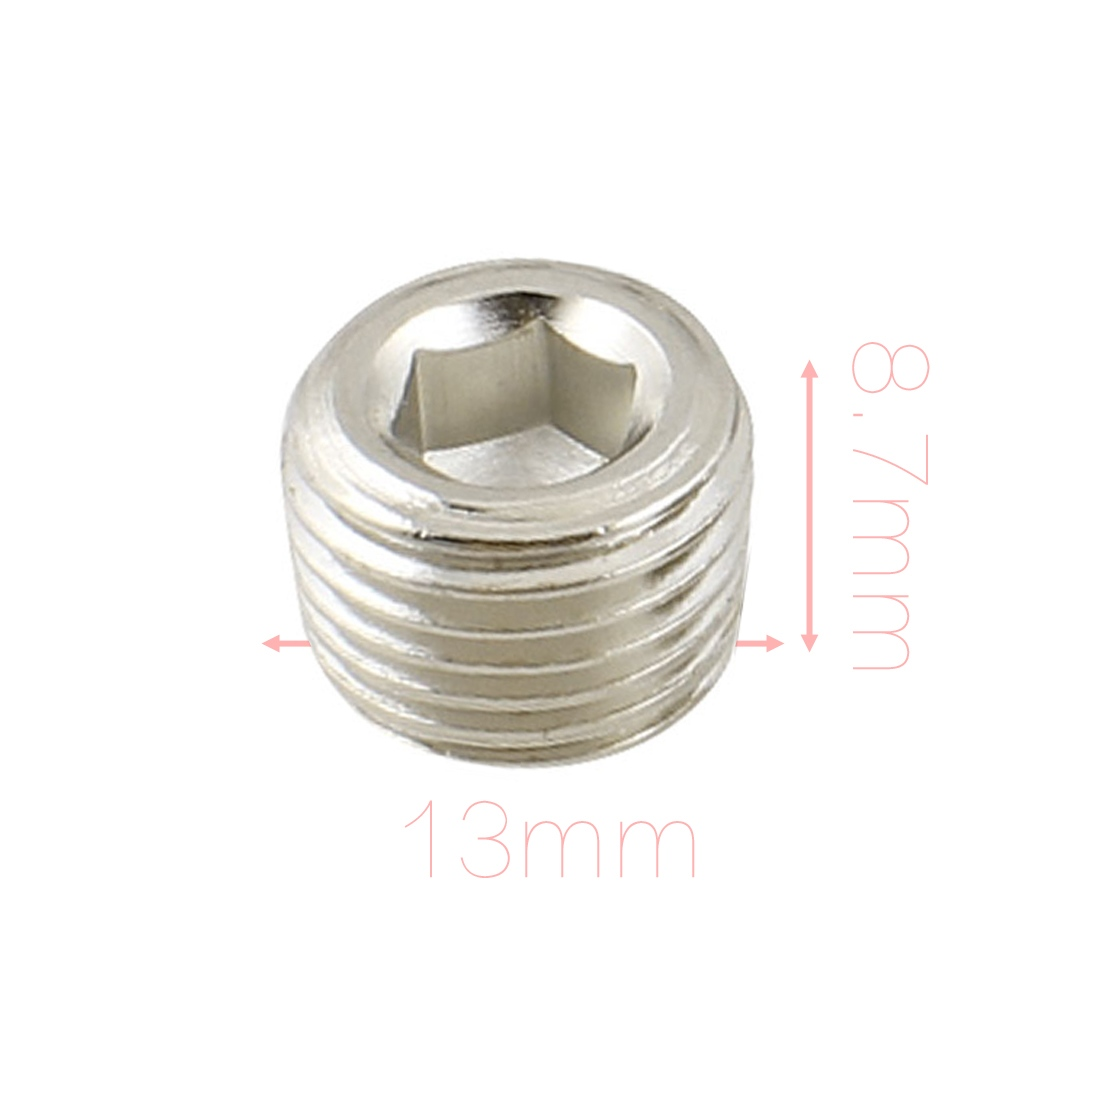 UXCELL Air Pipe Fittings 1/4 Pt Thread Hex Socket Metal Plugs Caps Silver Tone 5 Pcs 6 pcs air pipe fittings 1 4pt male thread hex socket brass plugs caps